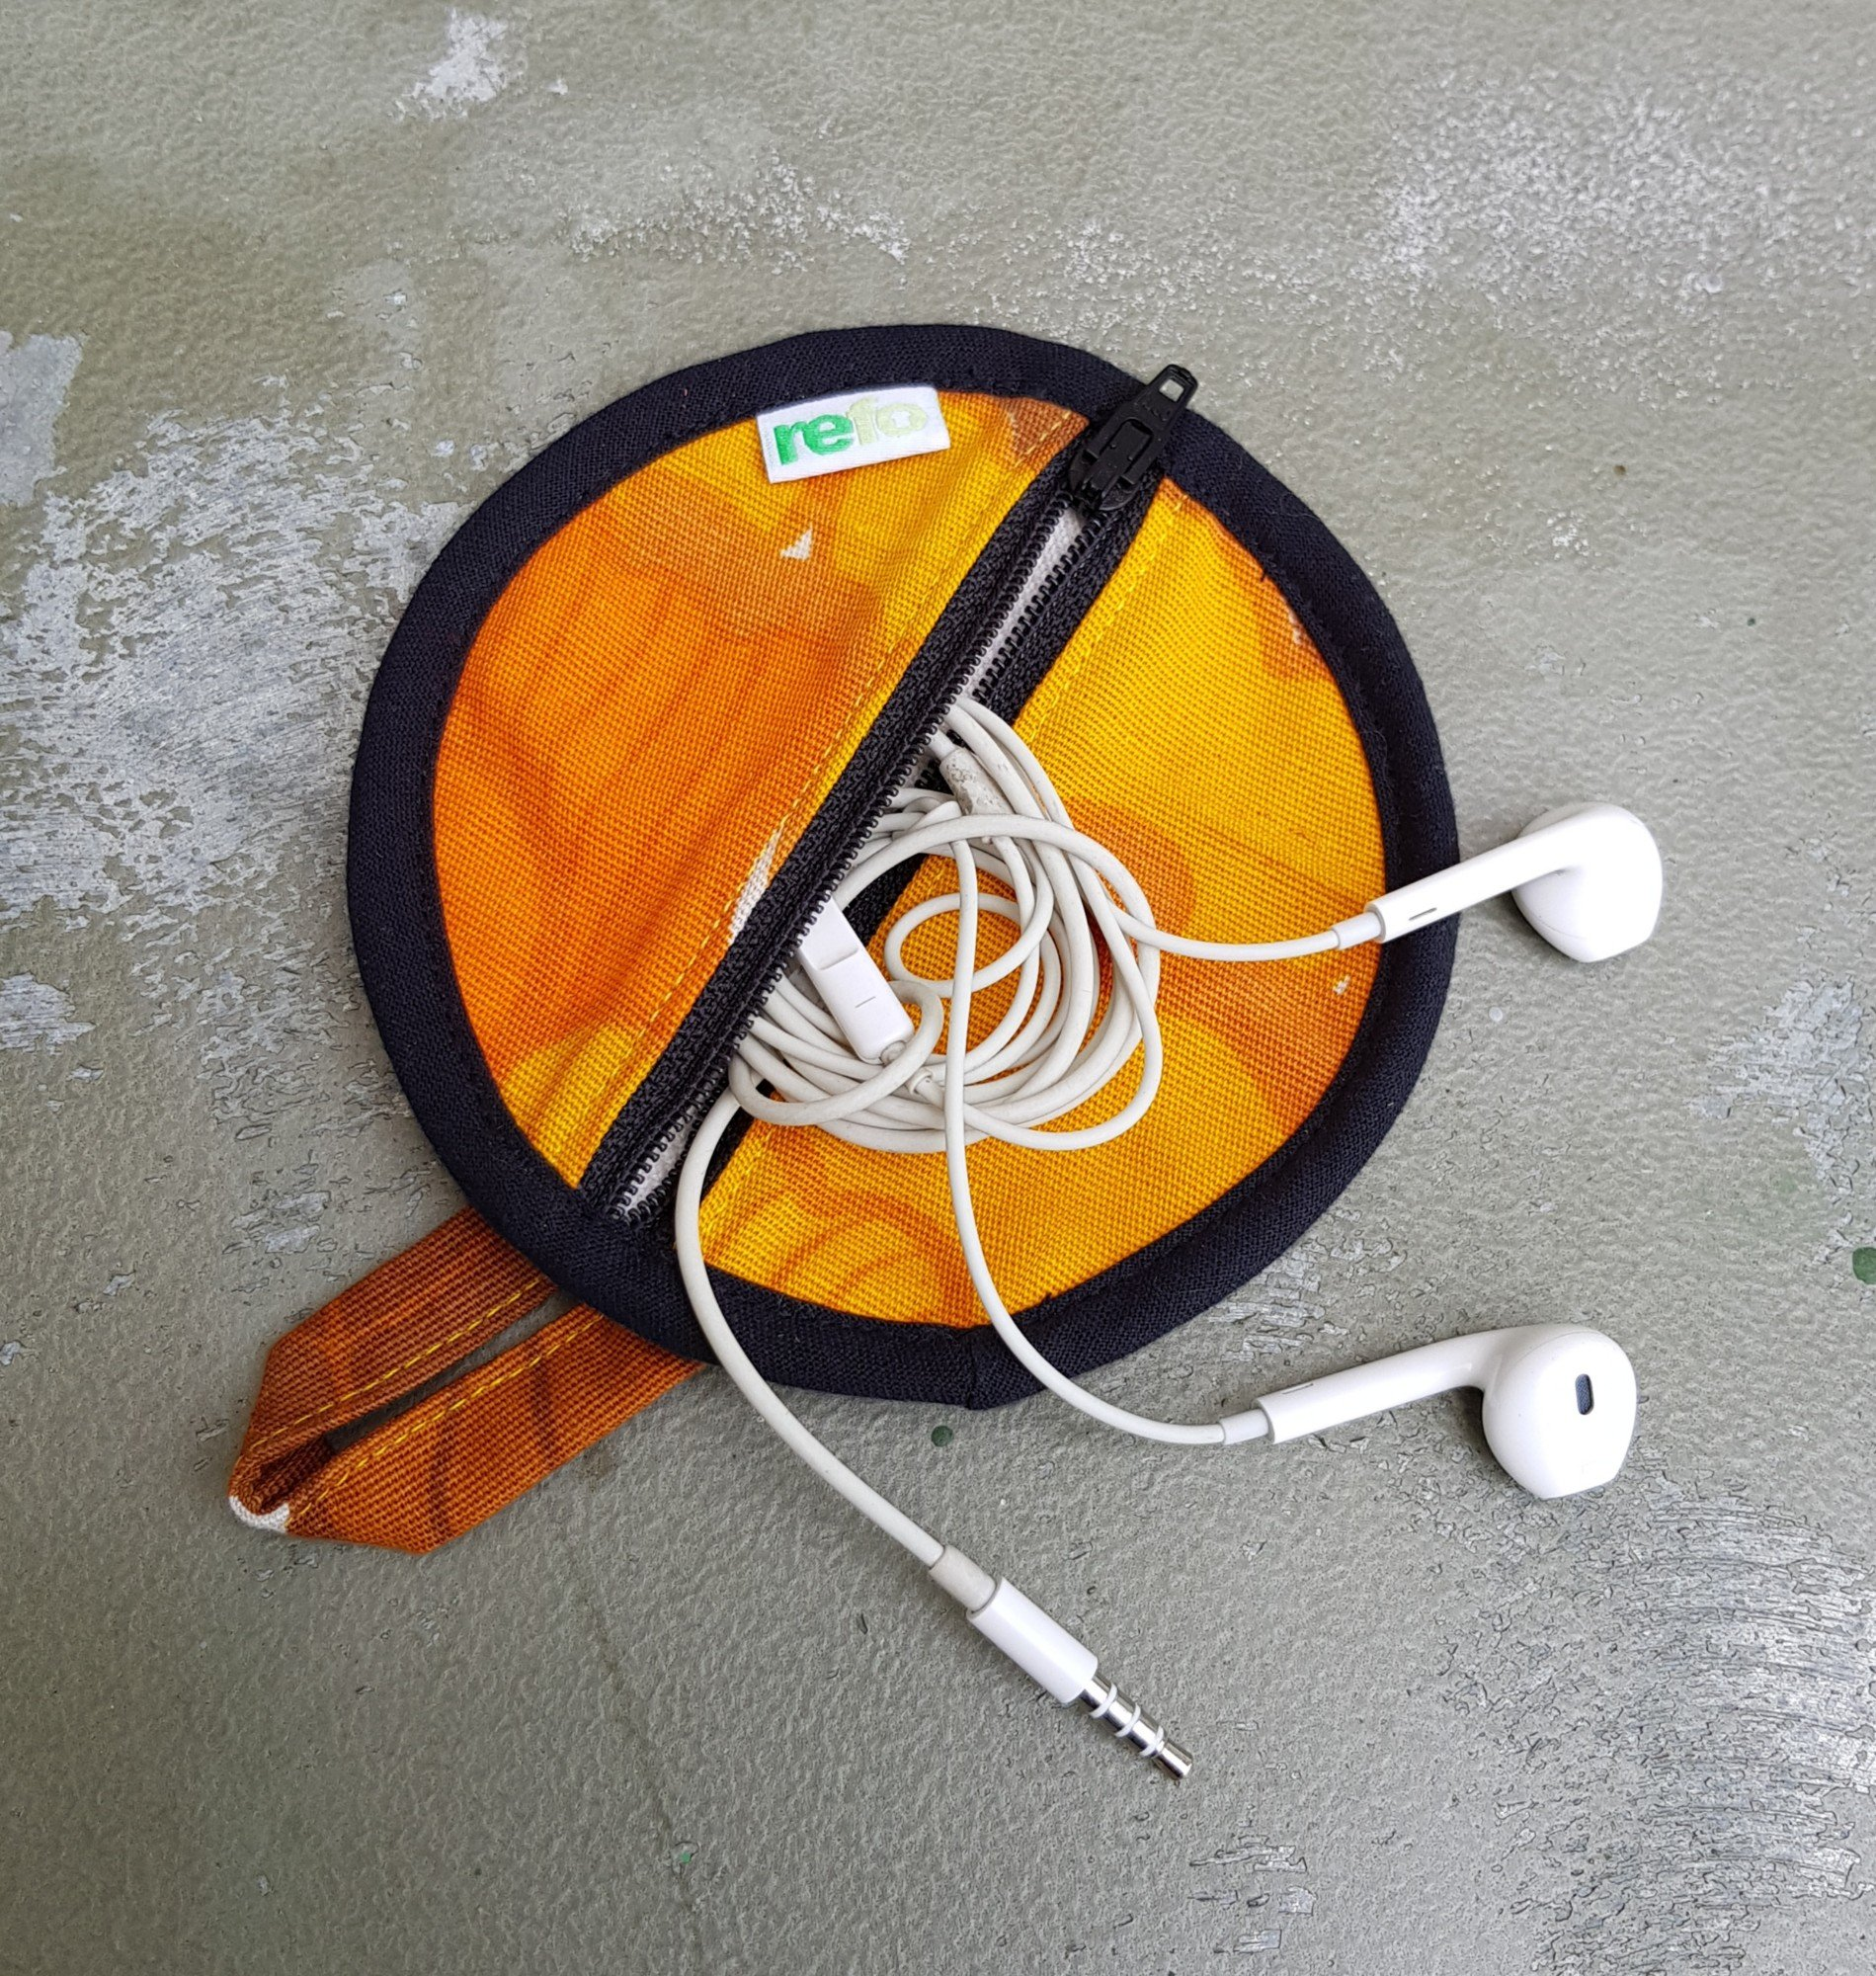 Fodral Till Hörlurar/Earphone Case - Orange/svart